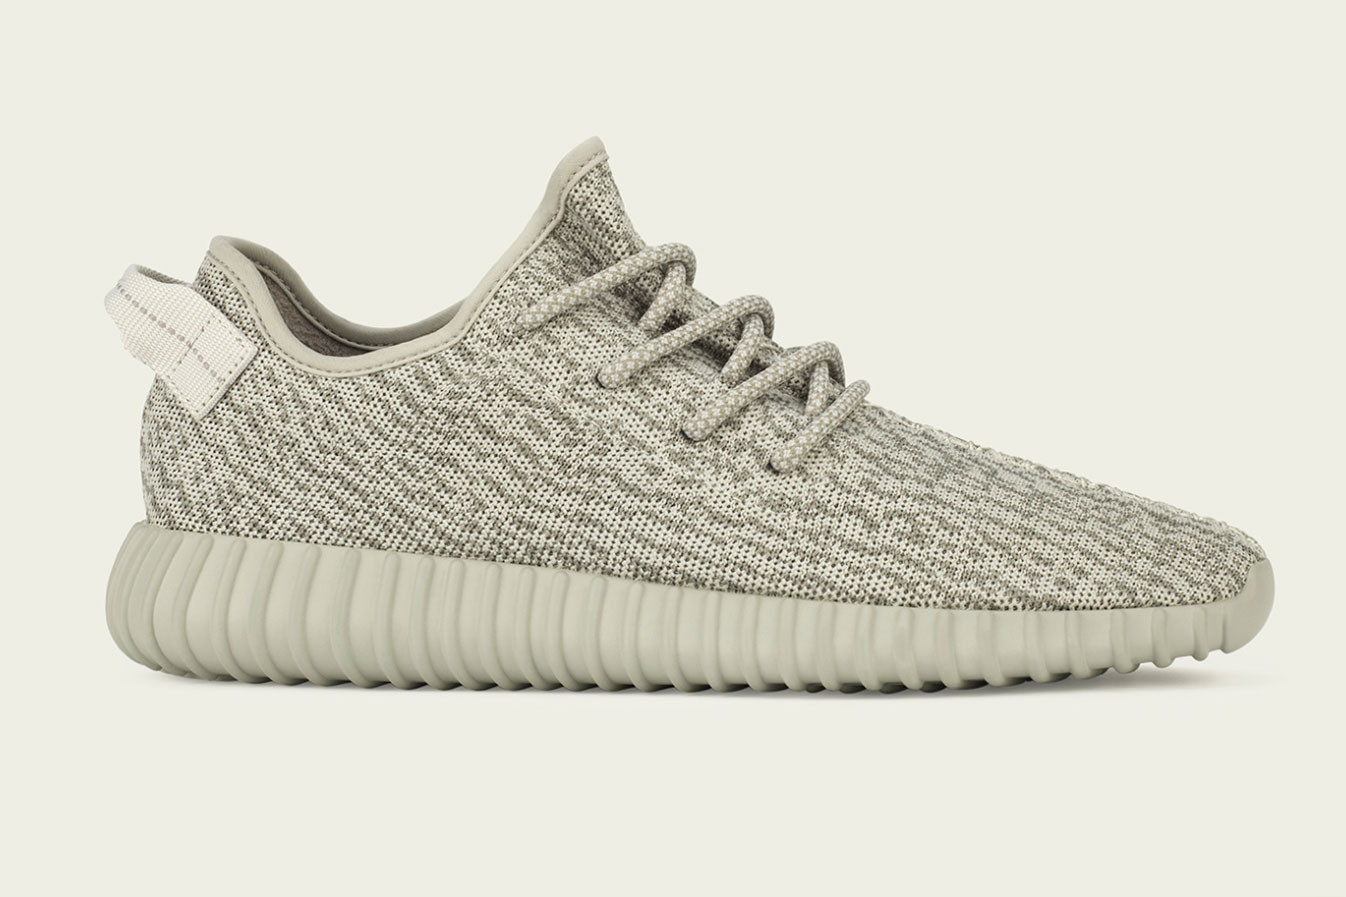 yeezy-boost-350-moonrock-official-announcement-00